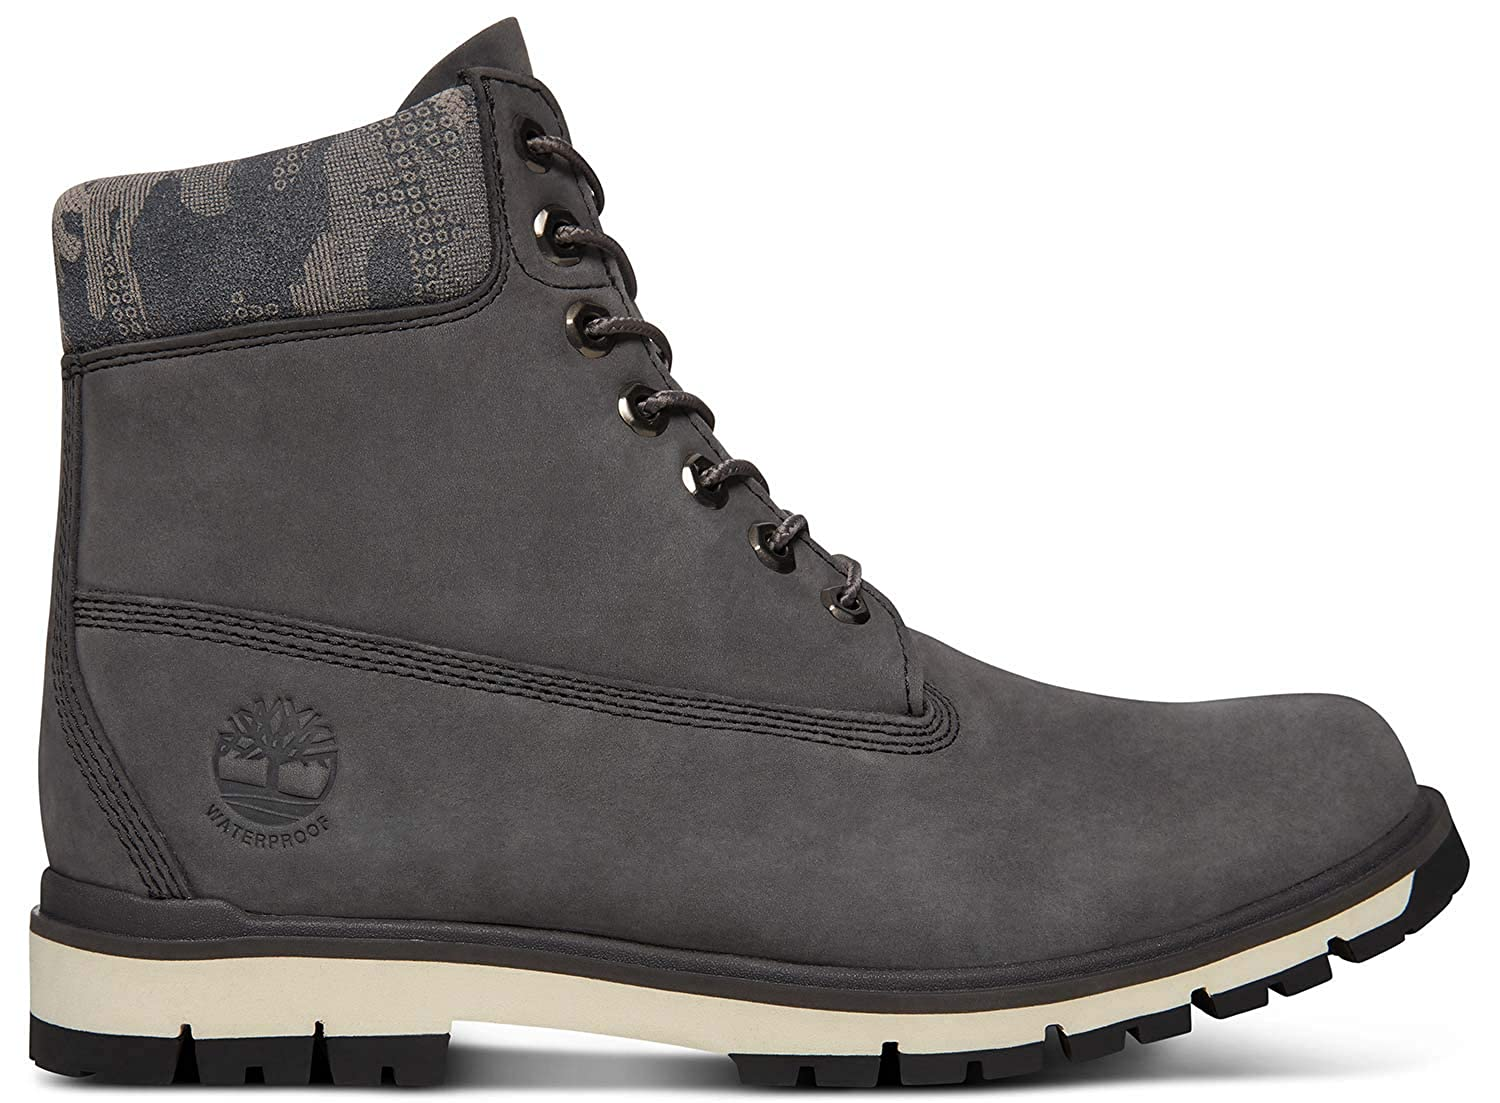 Timberland Hombres Forged Iron Gris Radford 6 Inch Botas